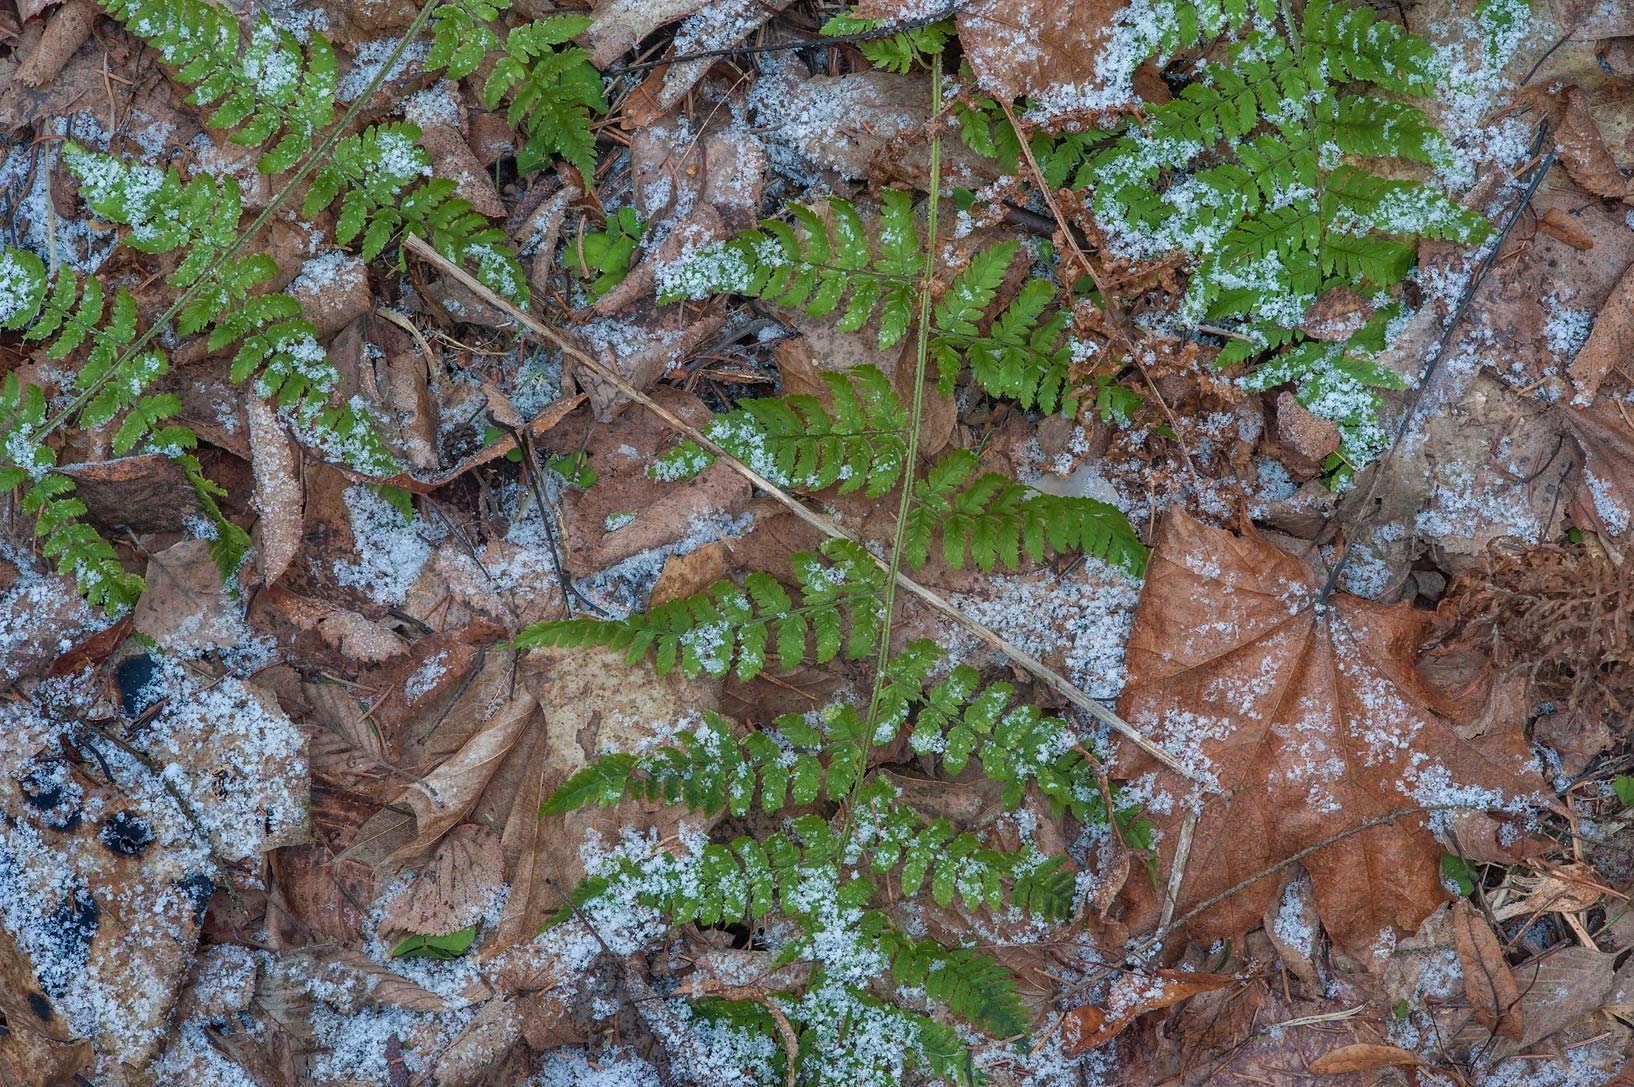 Green fern under snow in Old Sylvia in Pavlovsk...suburb of St.Petersburg, Russia